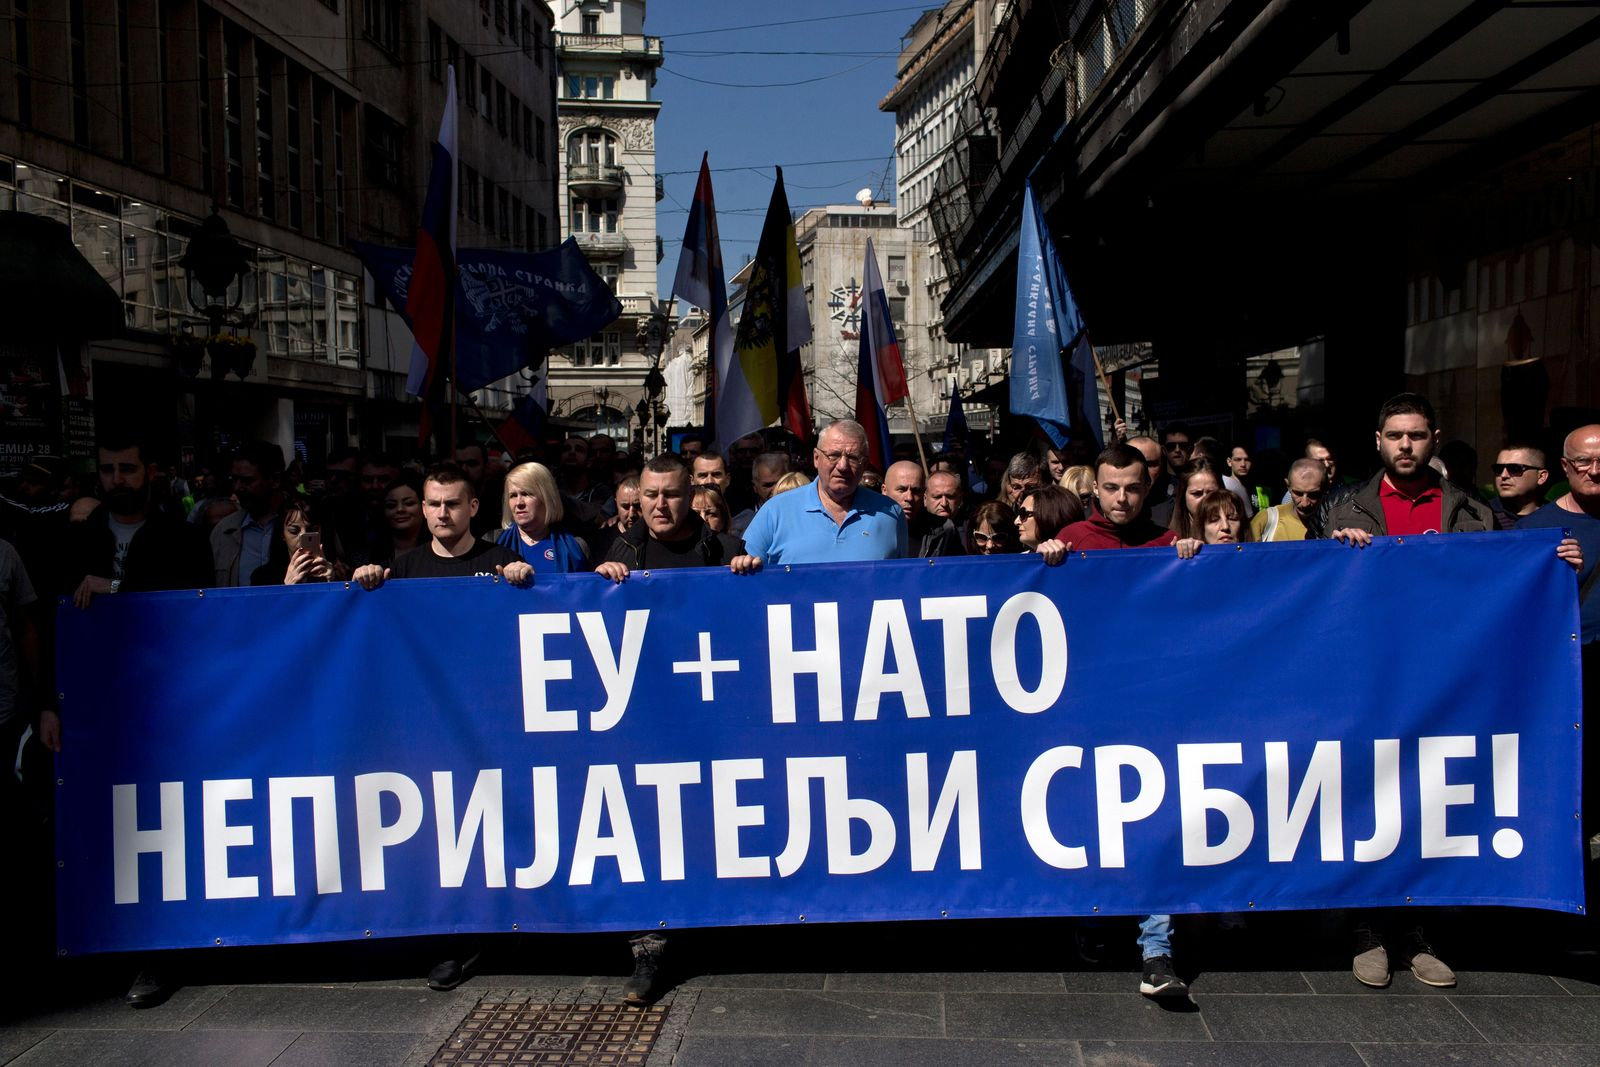 Vojislav Seselj, center, the leader of the ultranationalist Serbian Radical Party, and his supporters, march along a street during a protest in Belgrade, Serbia, Sunday, March 24, 2019.{ } (AP Photo/Marko Drobnjakovic)